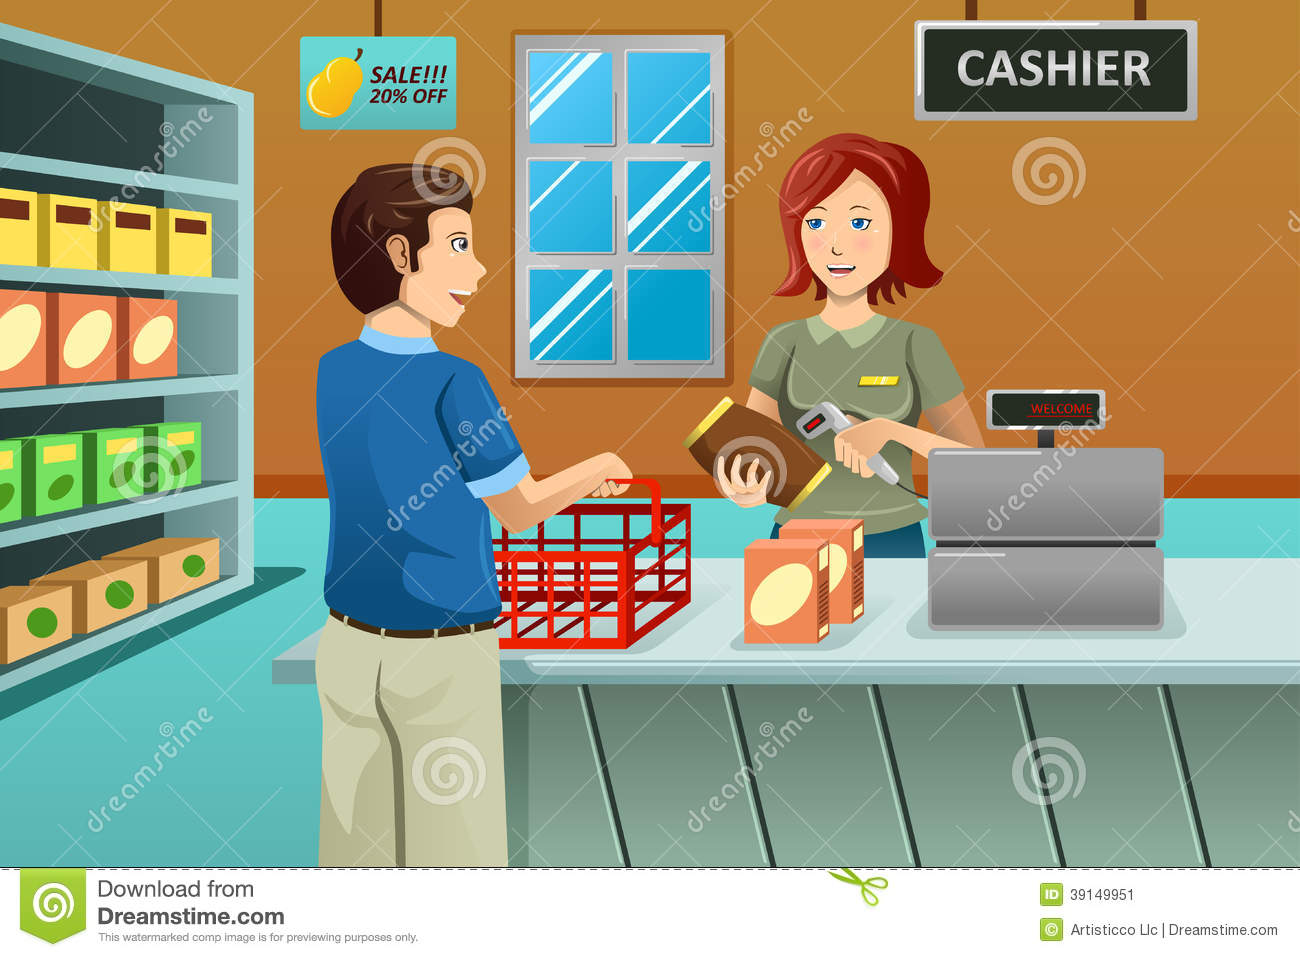 Cashier Working In The Grocery Store Stock Vector   Image  39149951